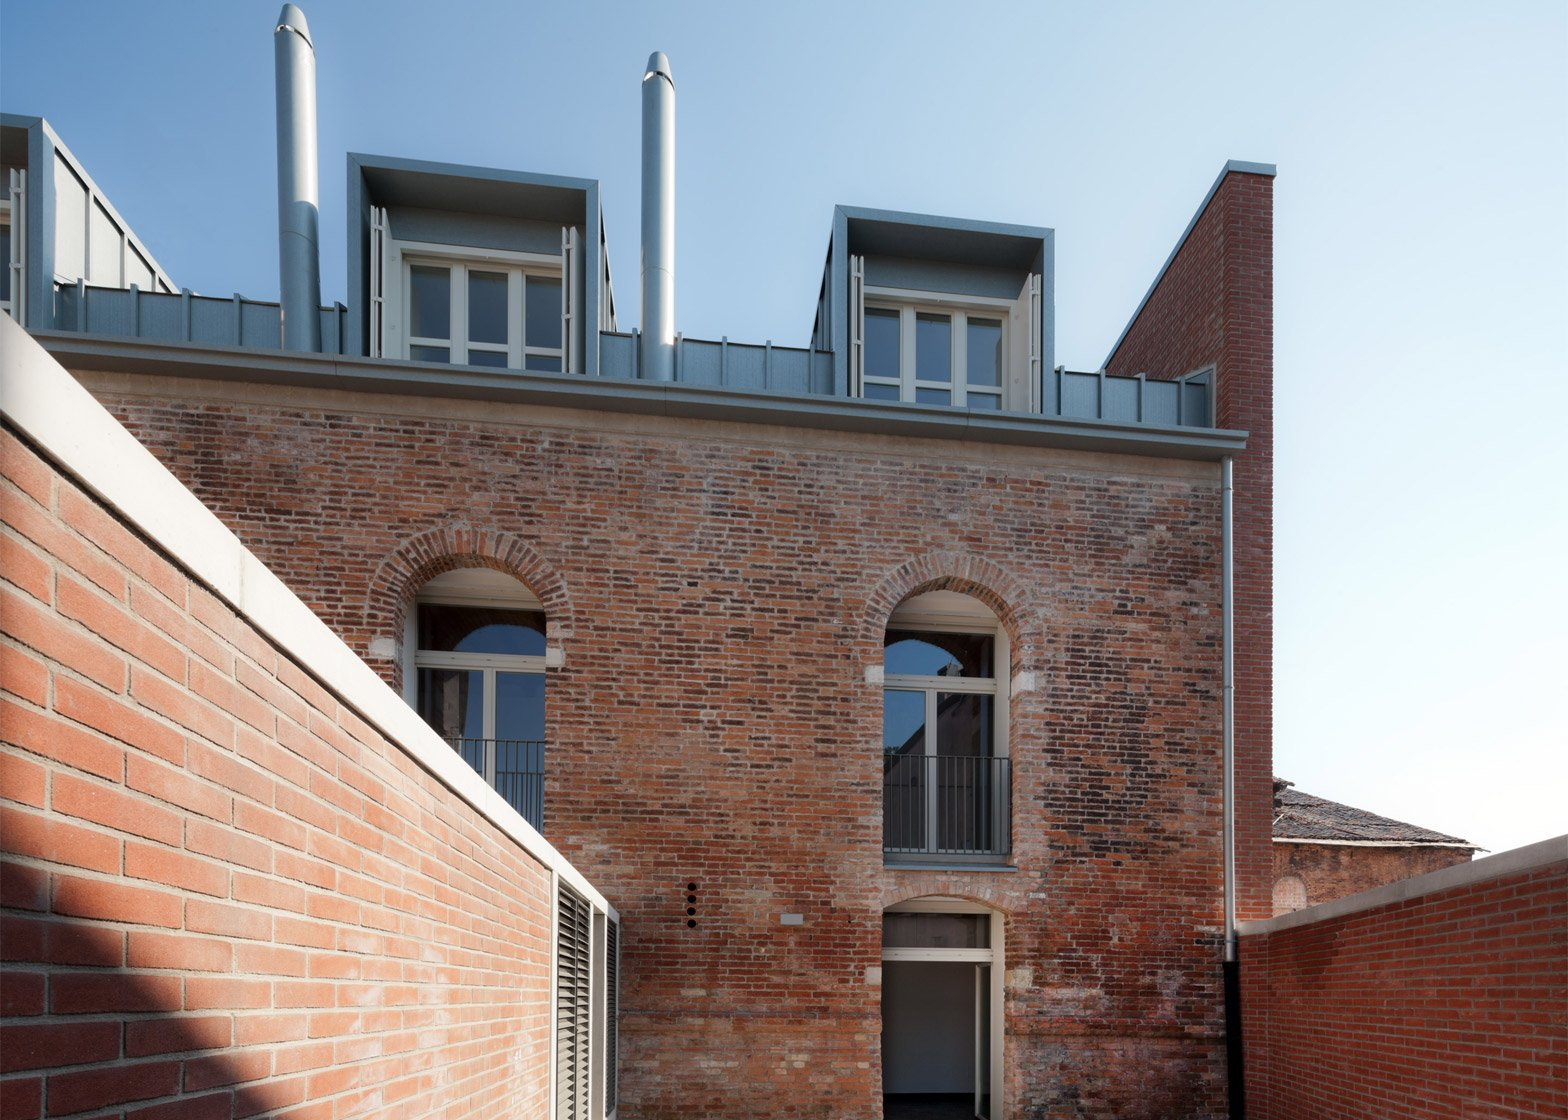 Venice renovation by Studio Macola